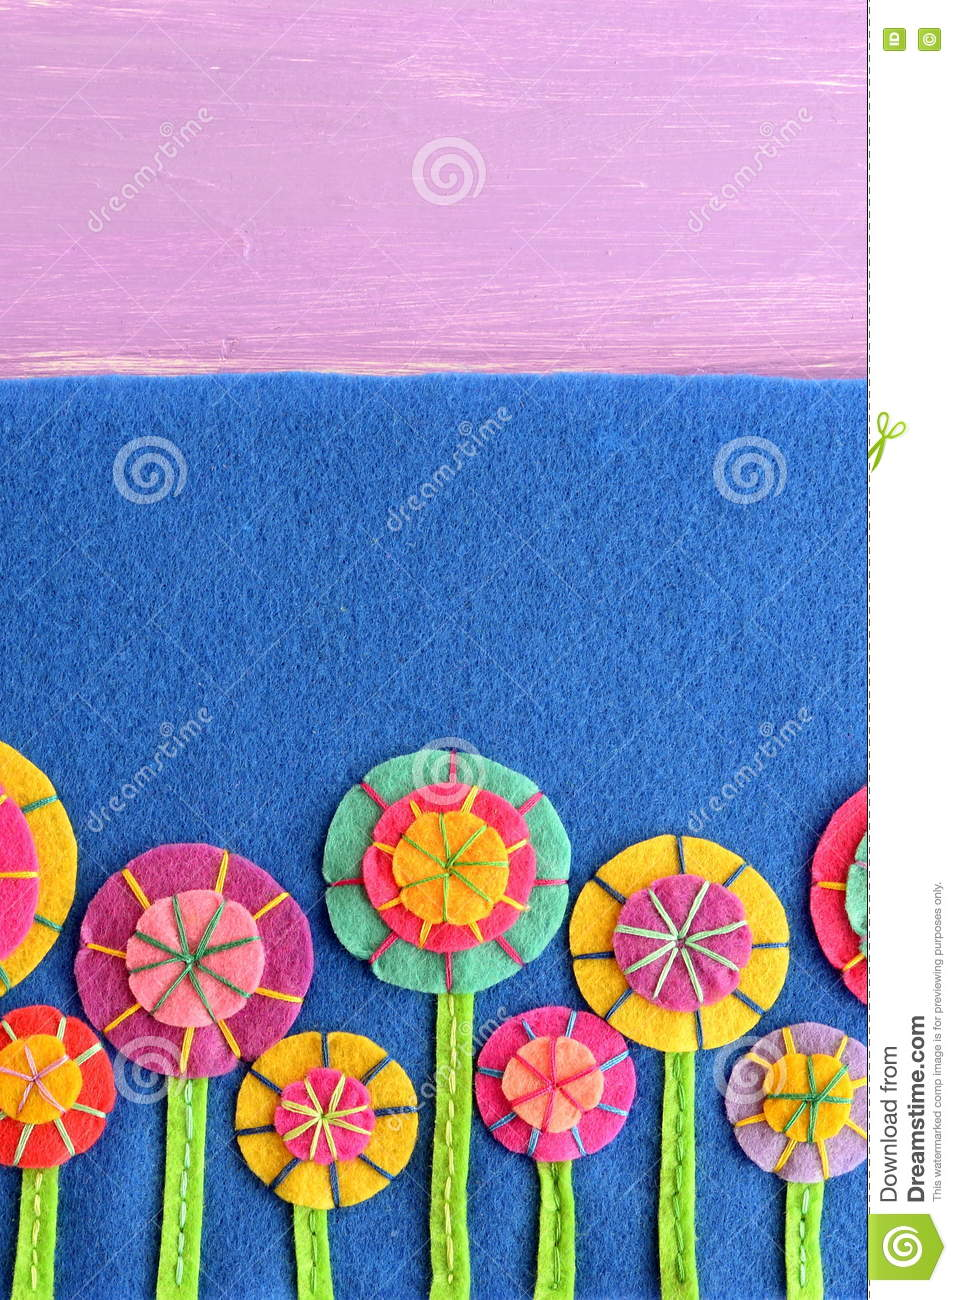 Mixed Felt Flowers On Blue Background With Empty Place For Text